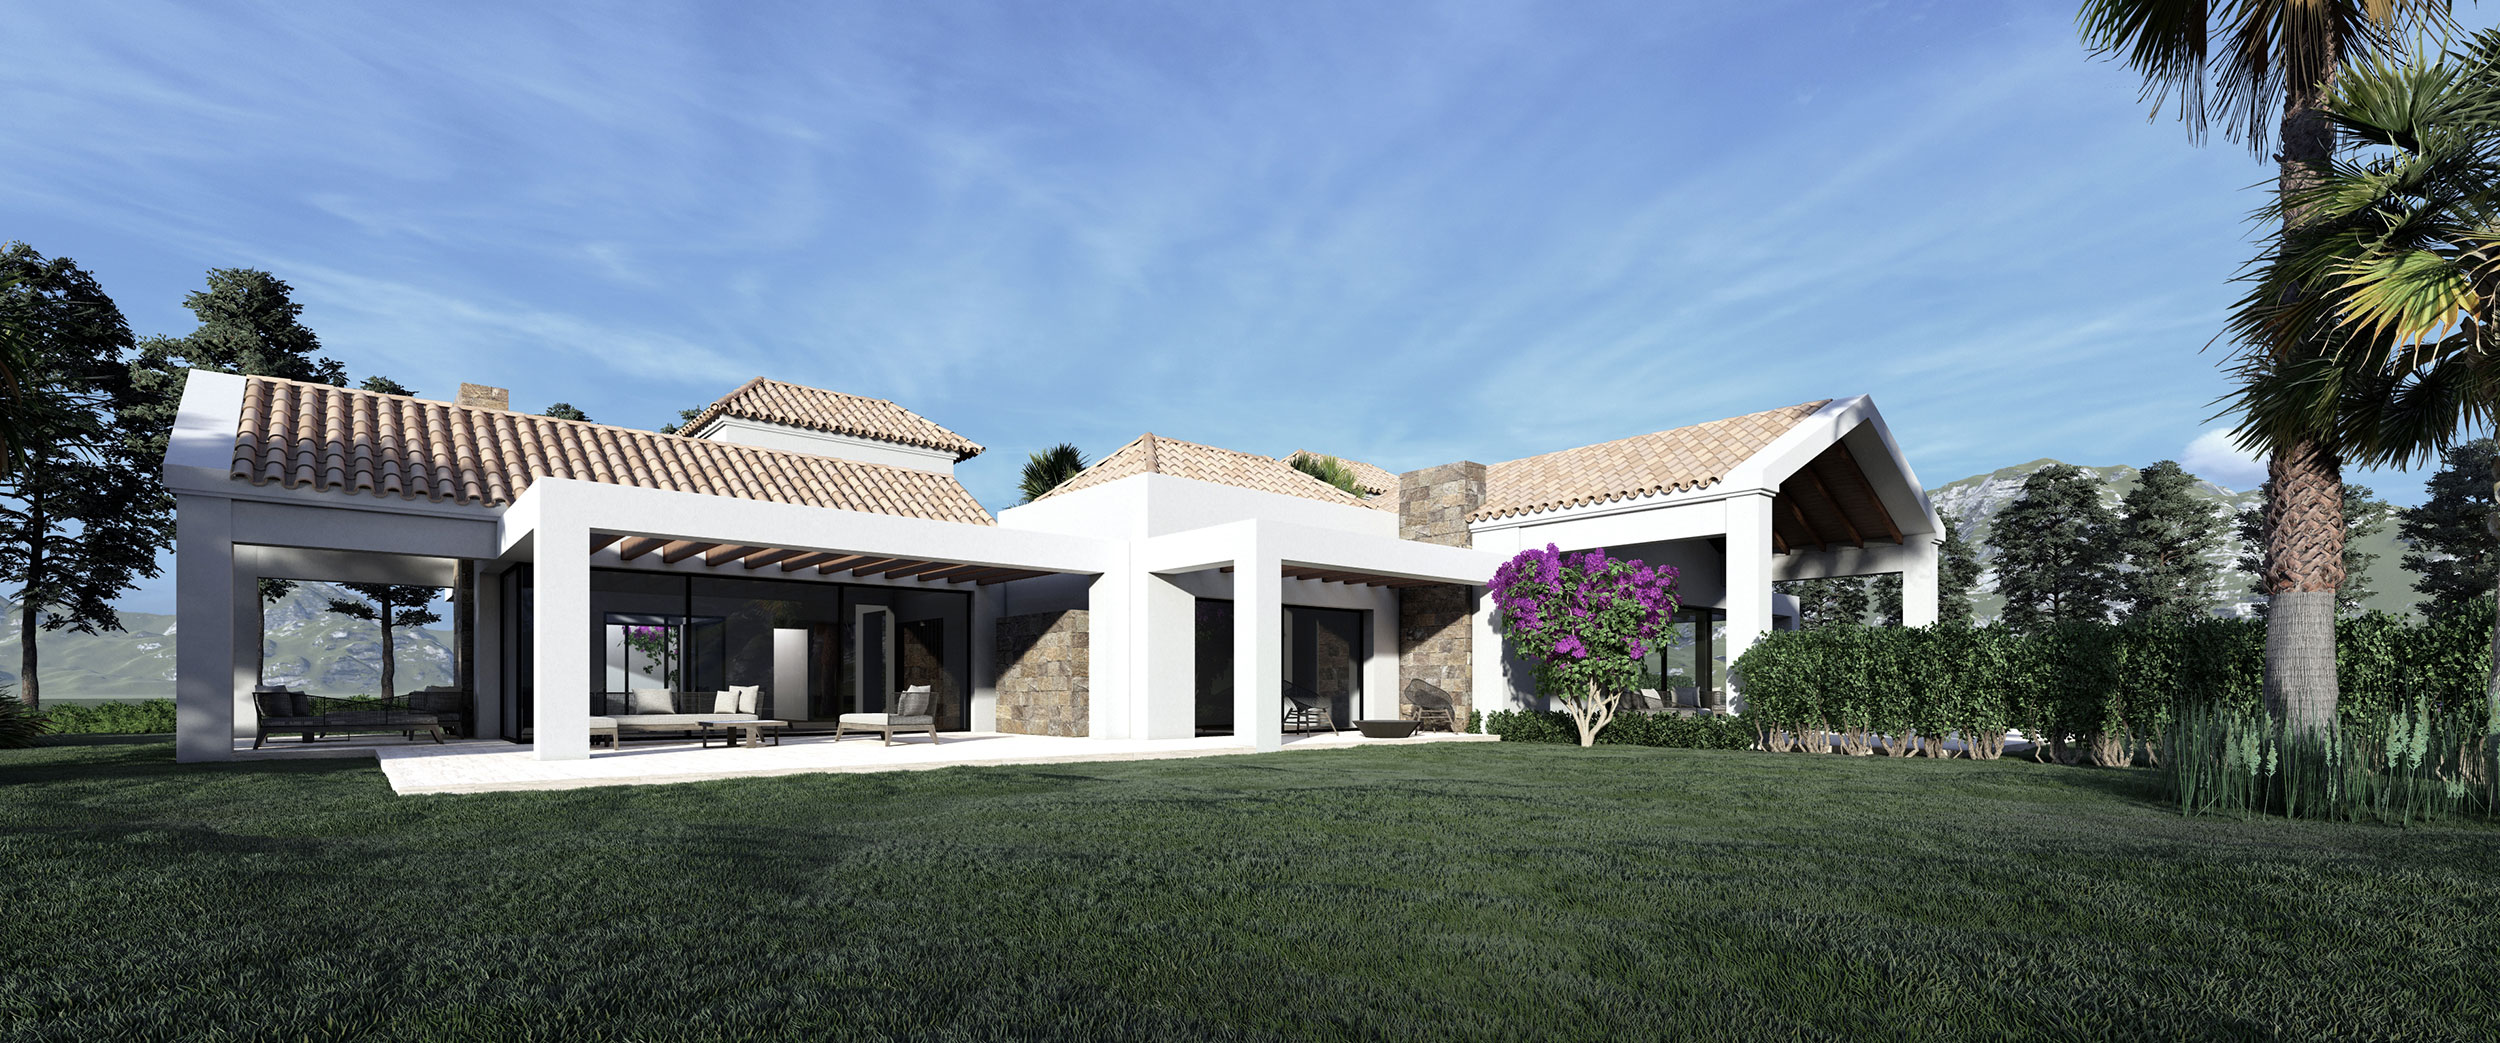 elderly upscale retirement community in andalucia